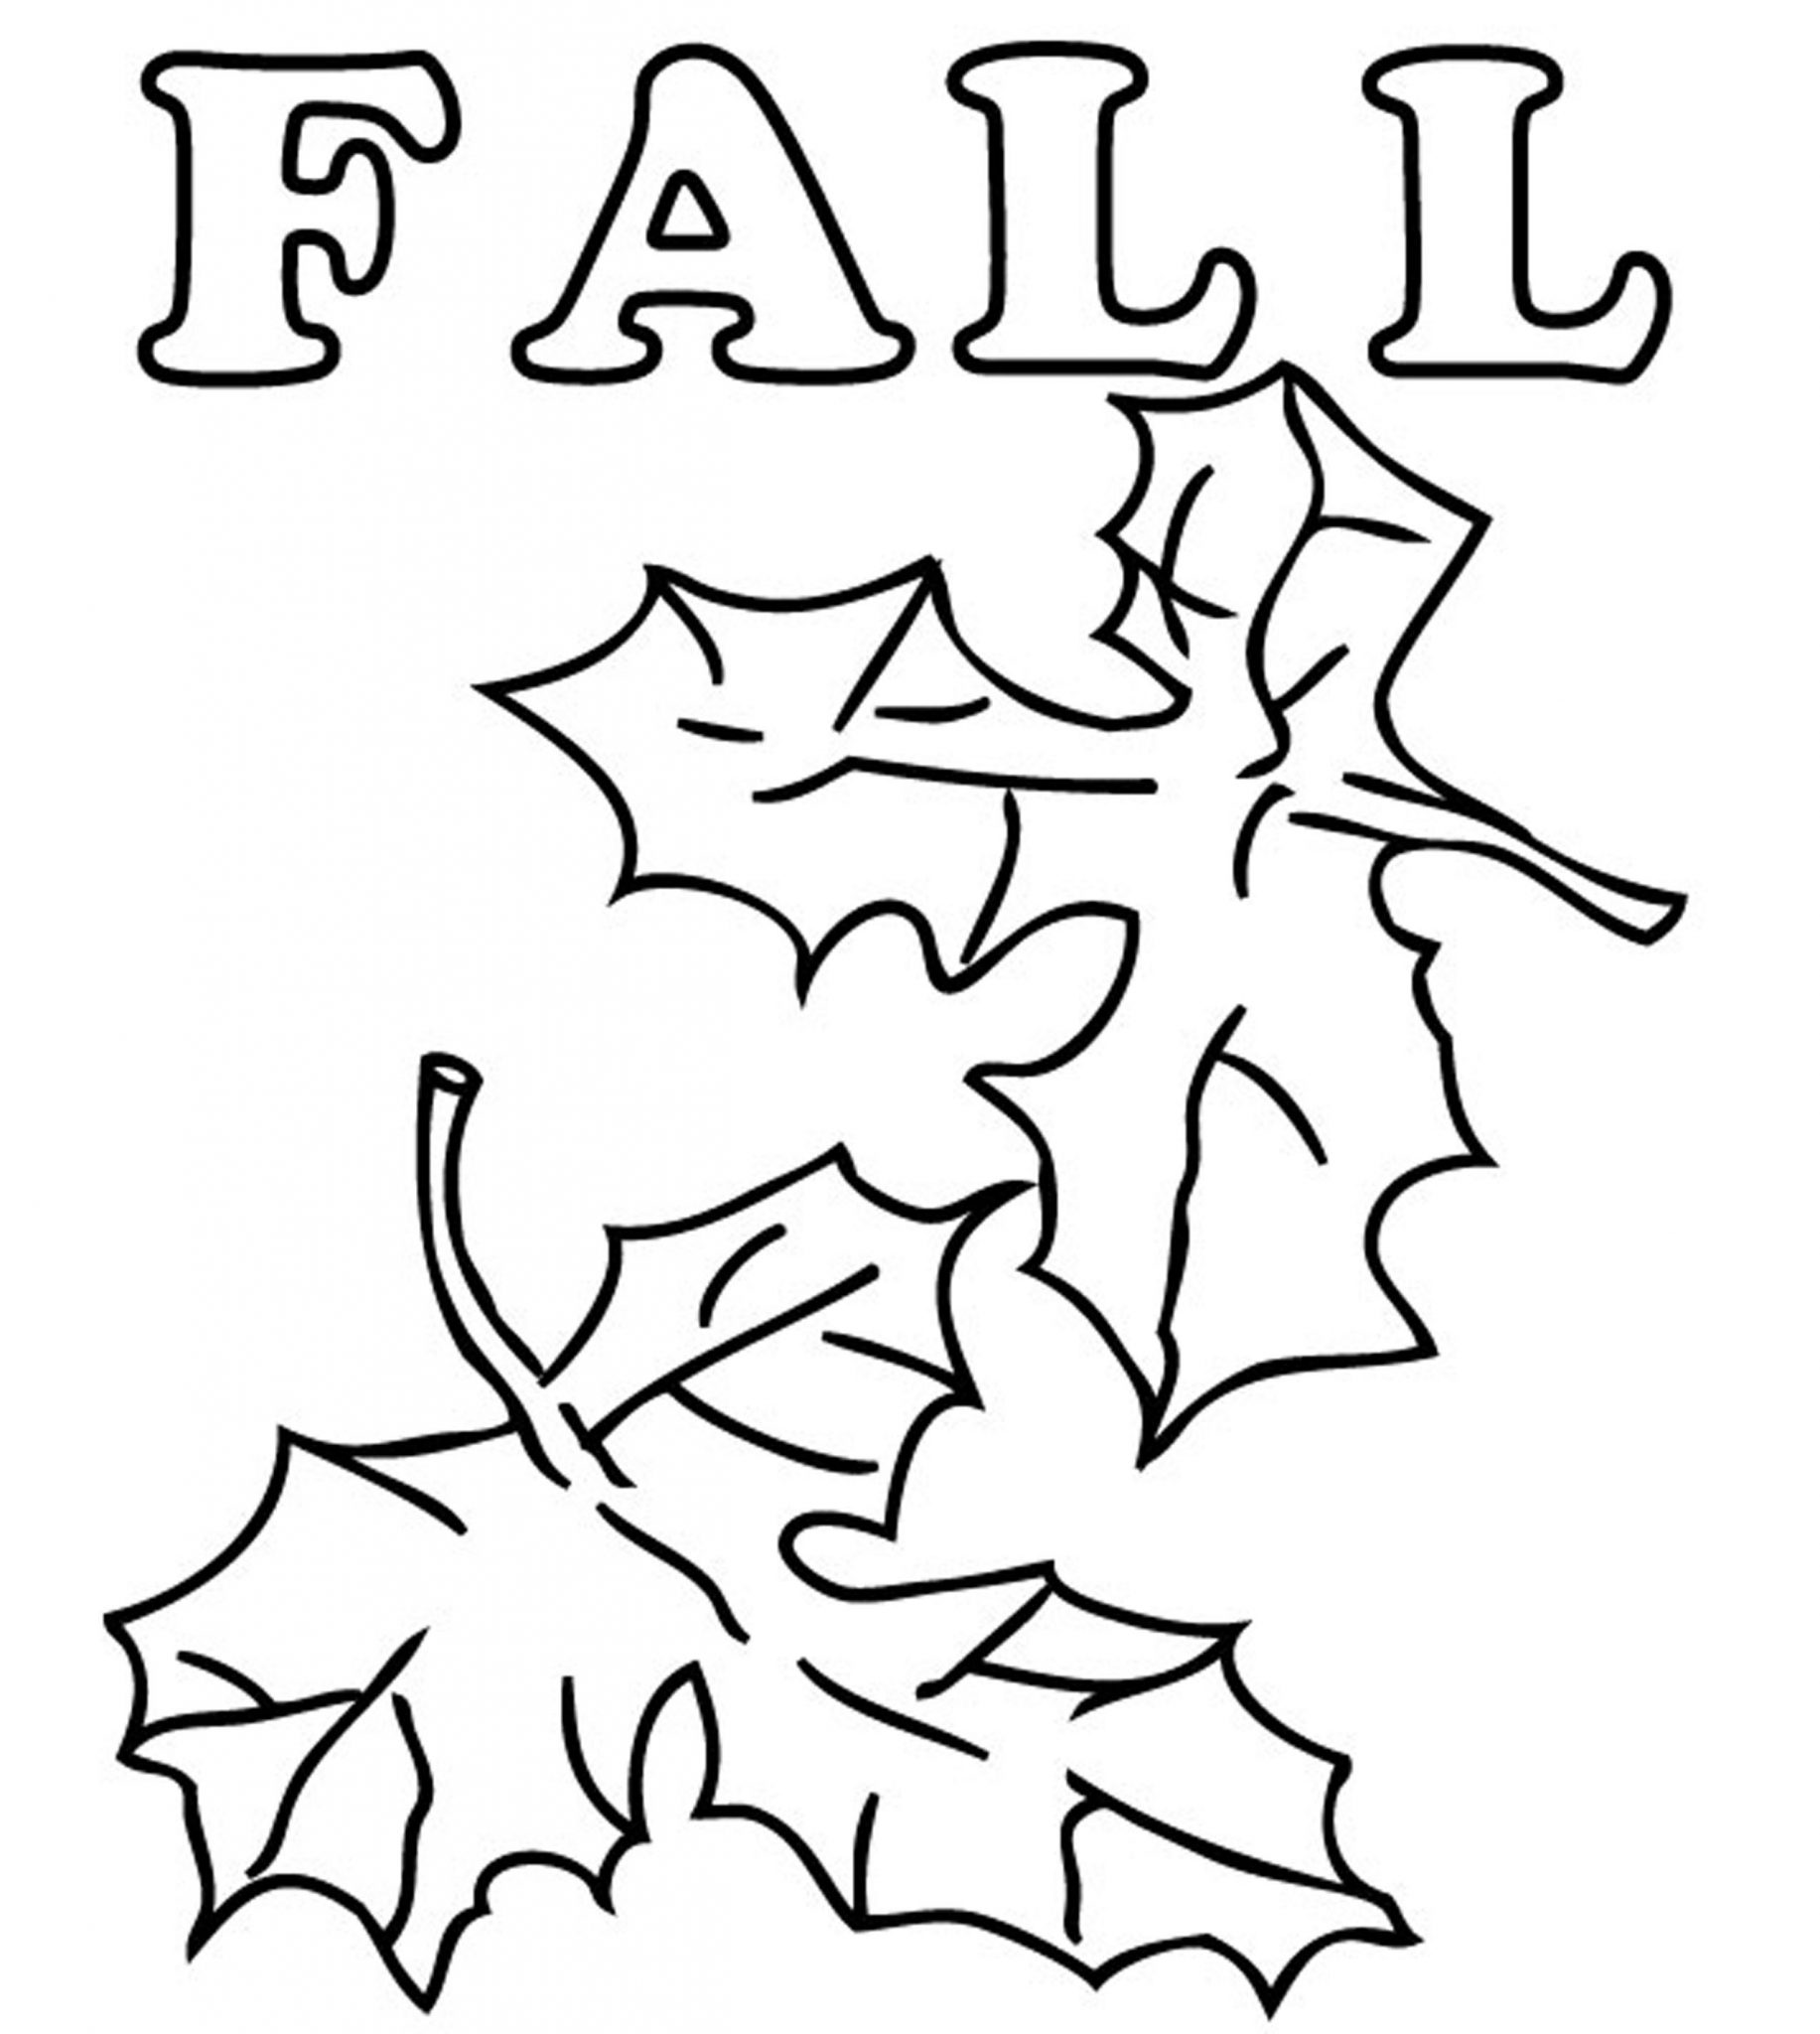 fall color sheet 30 printable autumn or fall coloring pages fall color sheet